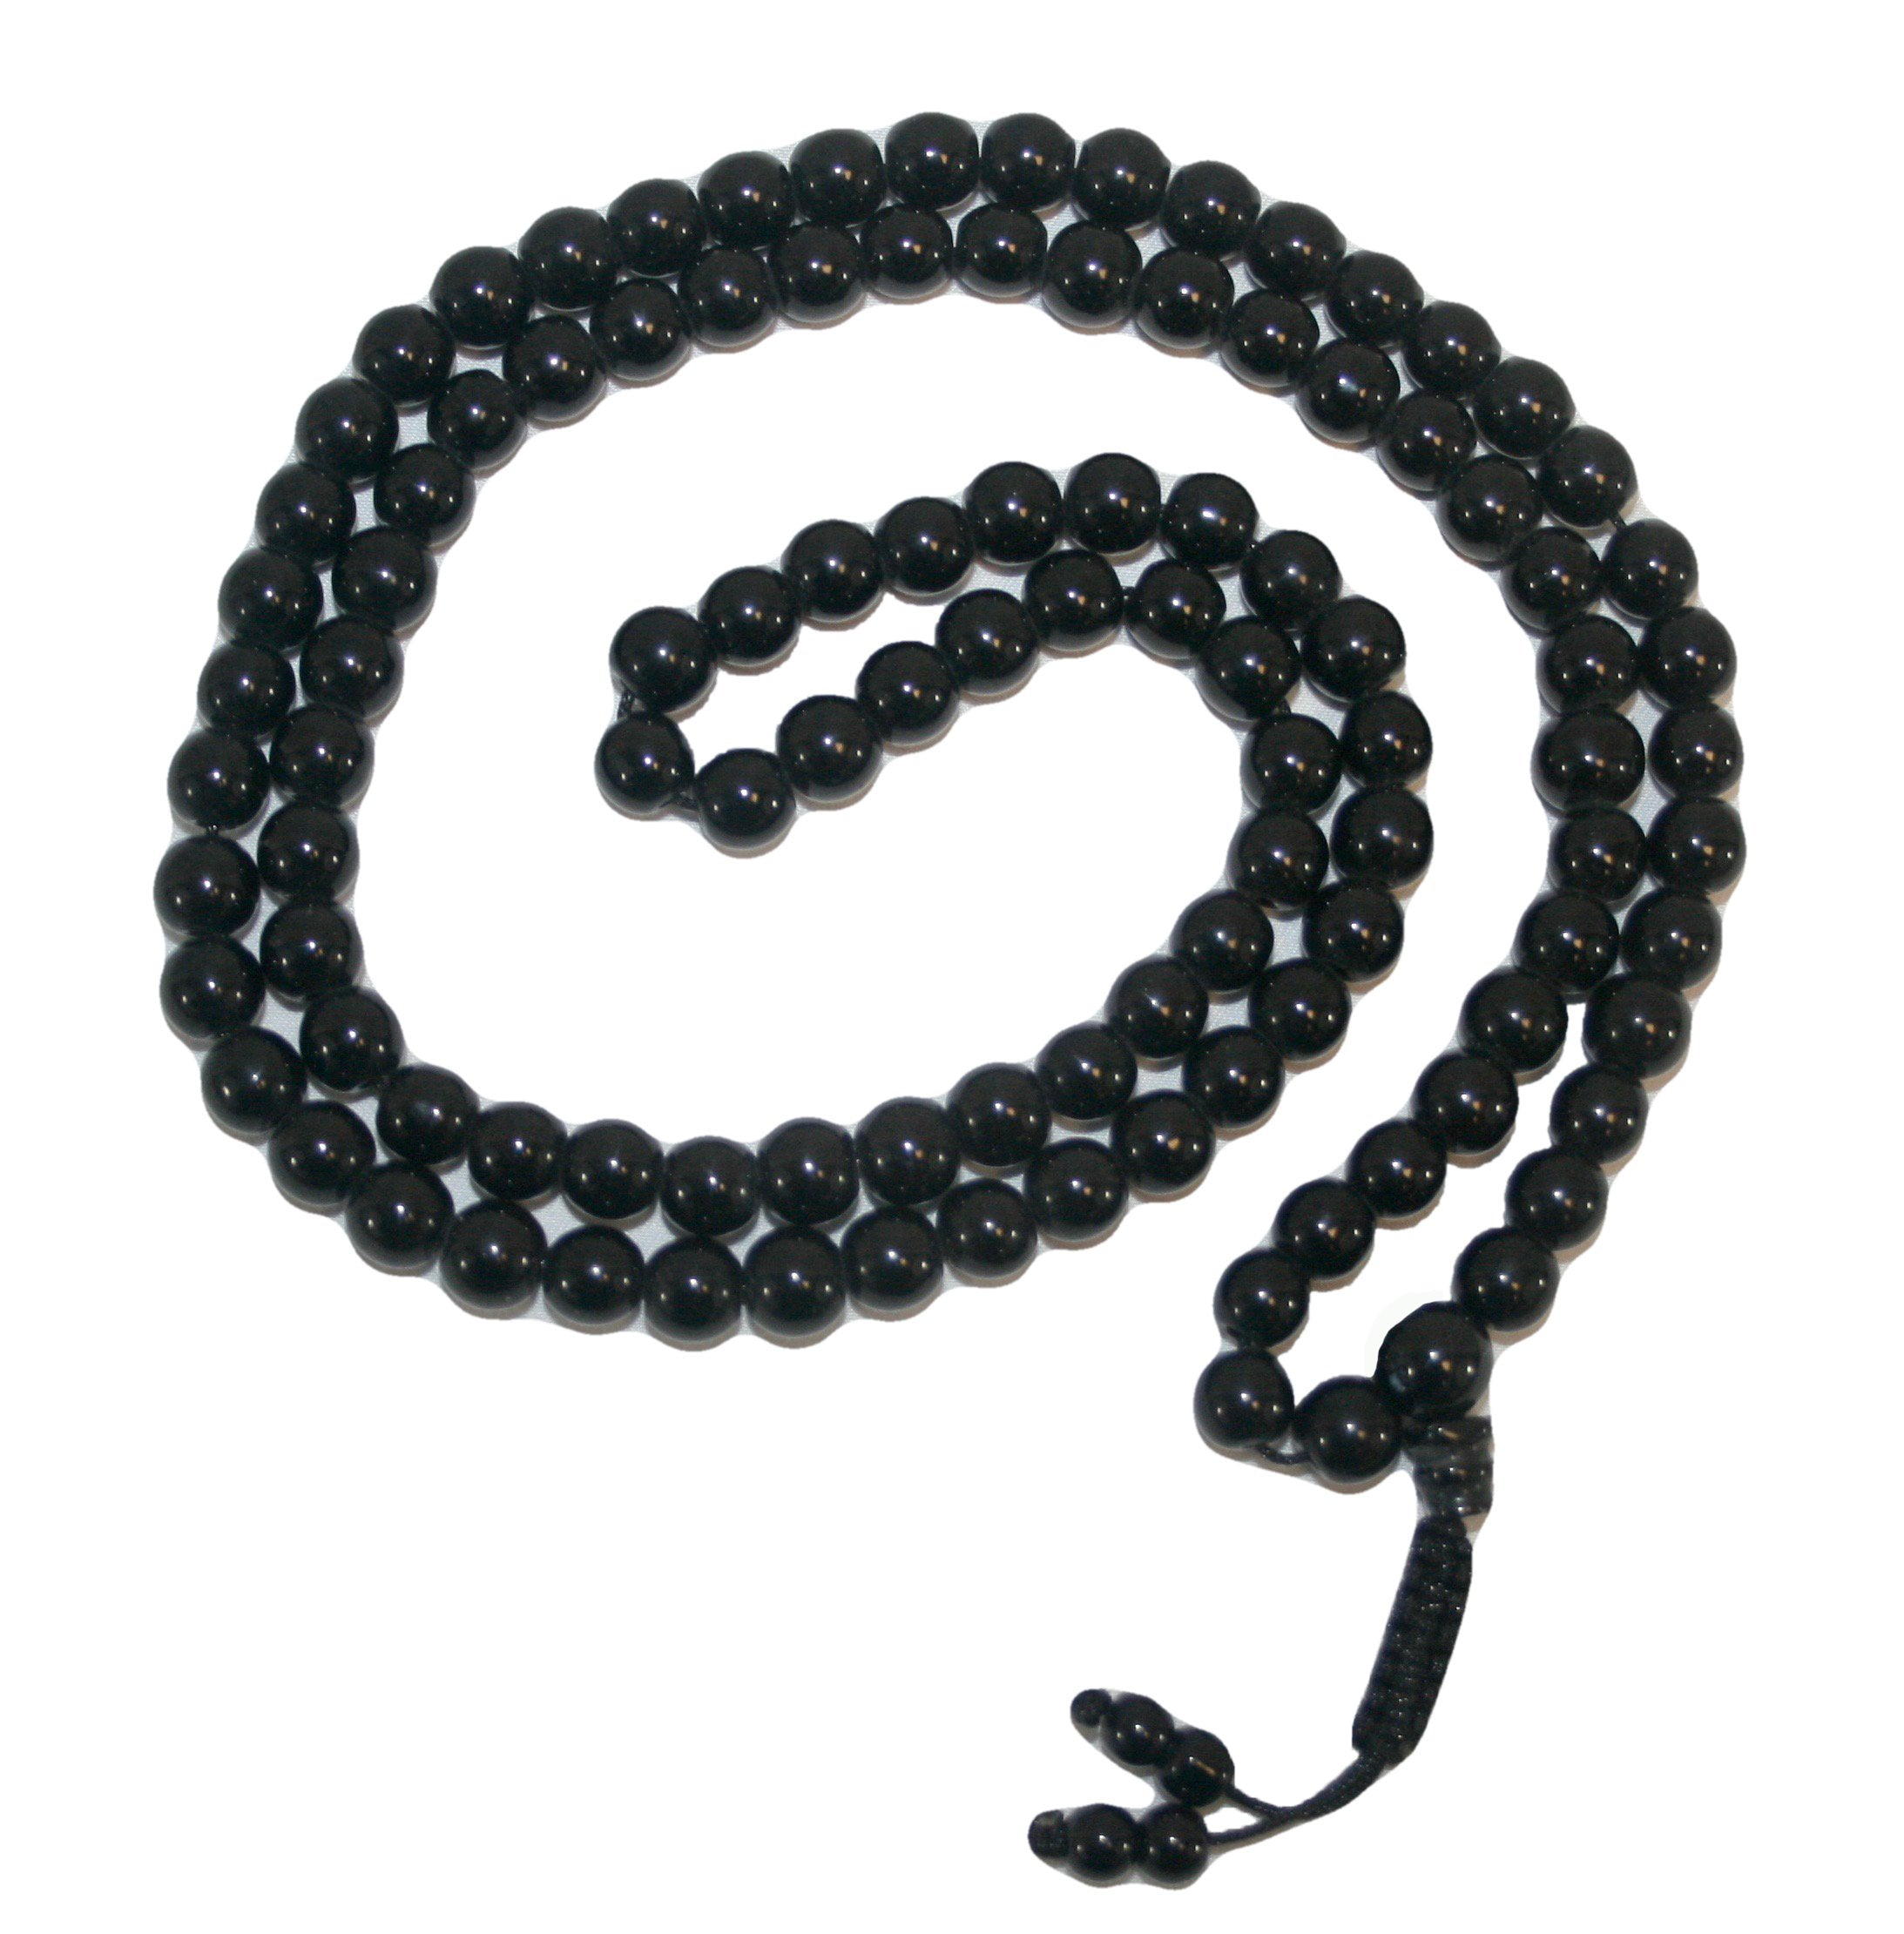 Agan Traders Original Tibetan Buddhist 108 Beads Prayer Meditation Mala - Agan Traders, Black Onyx